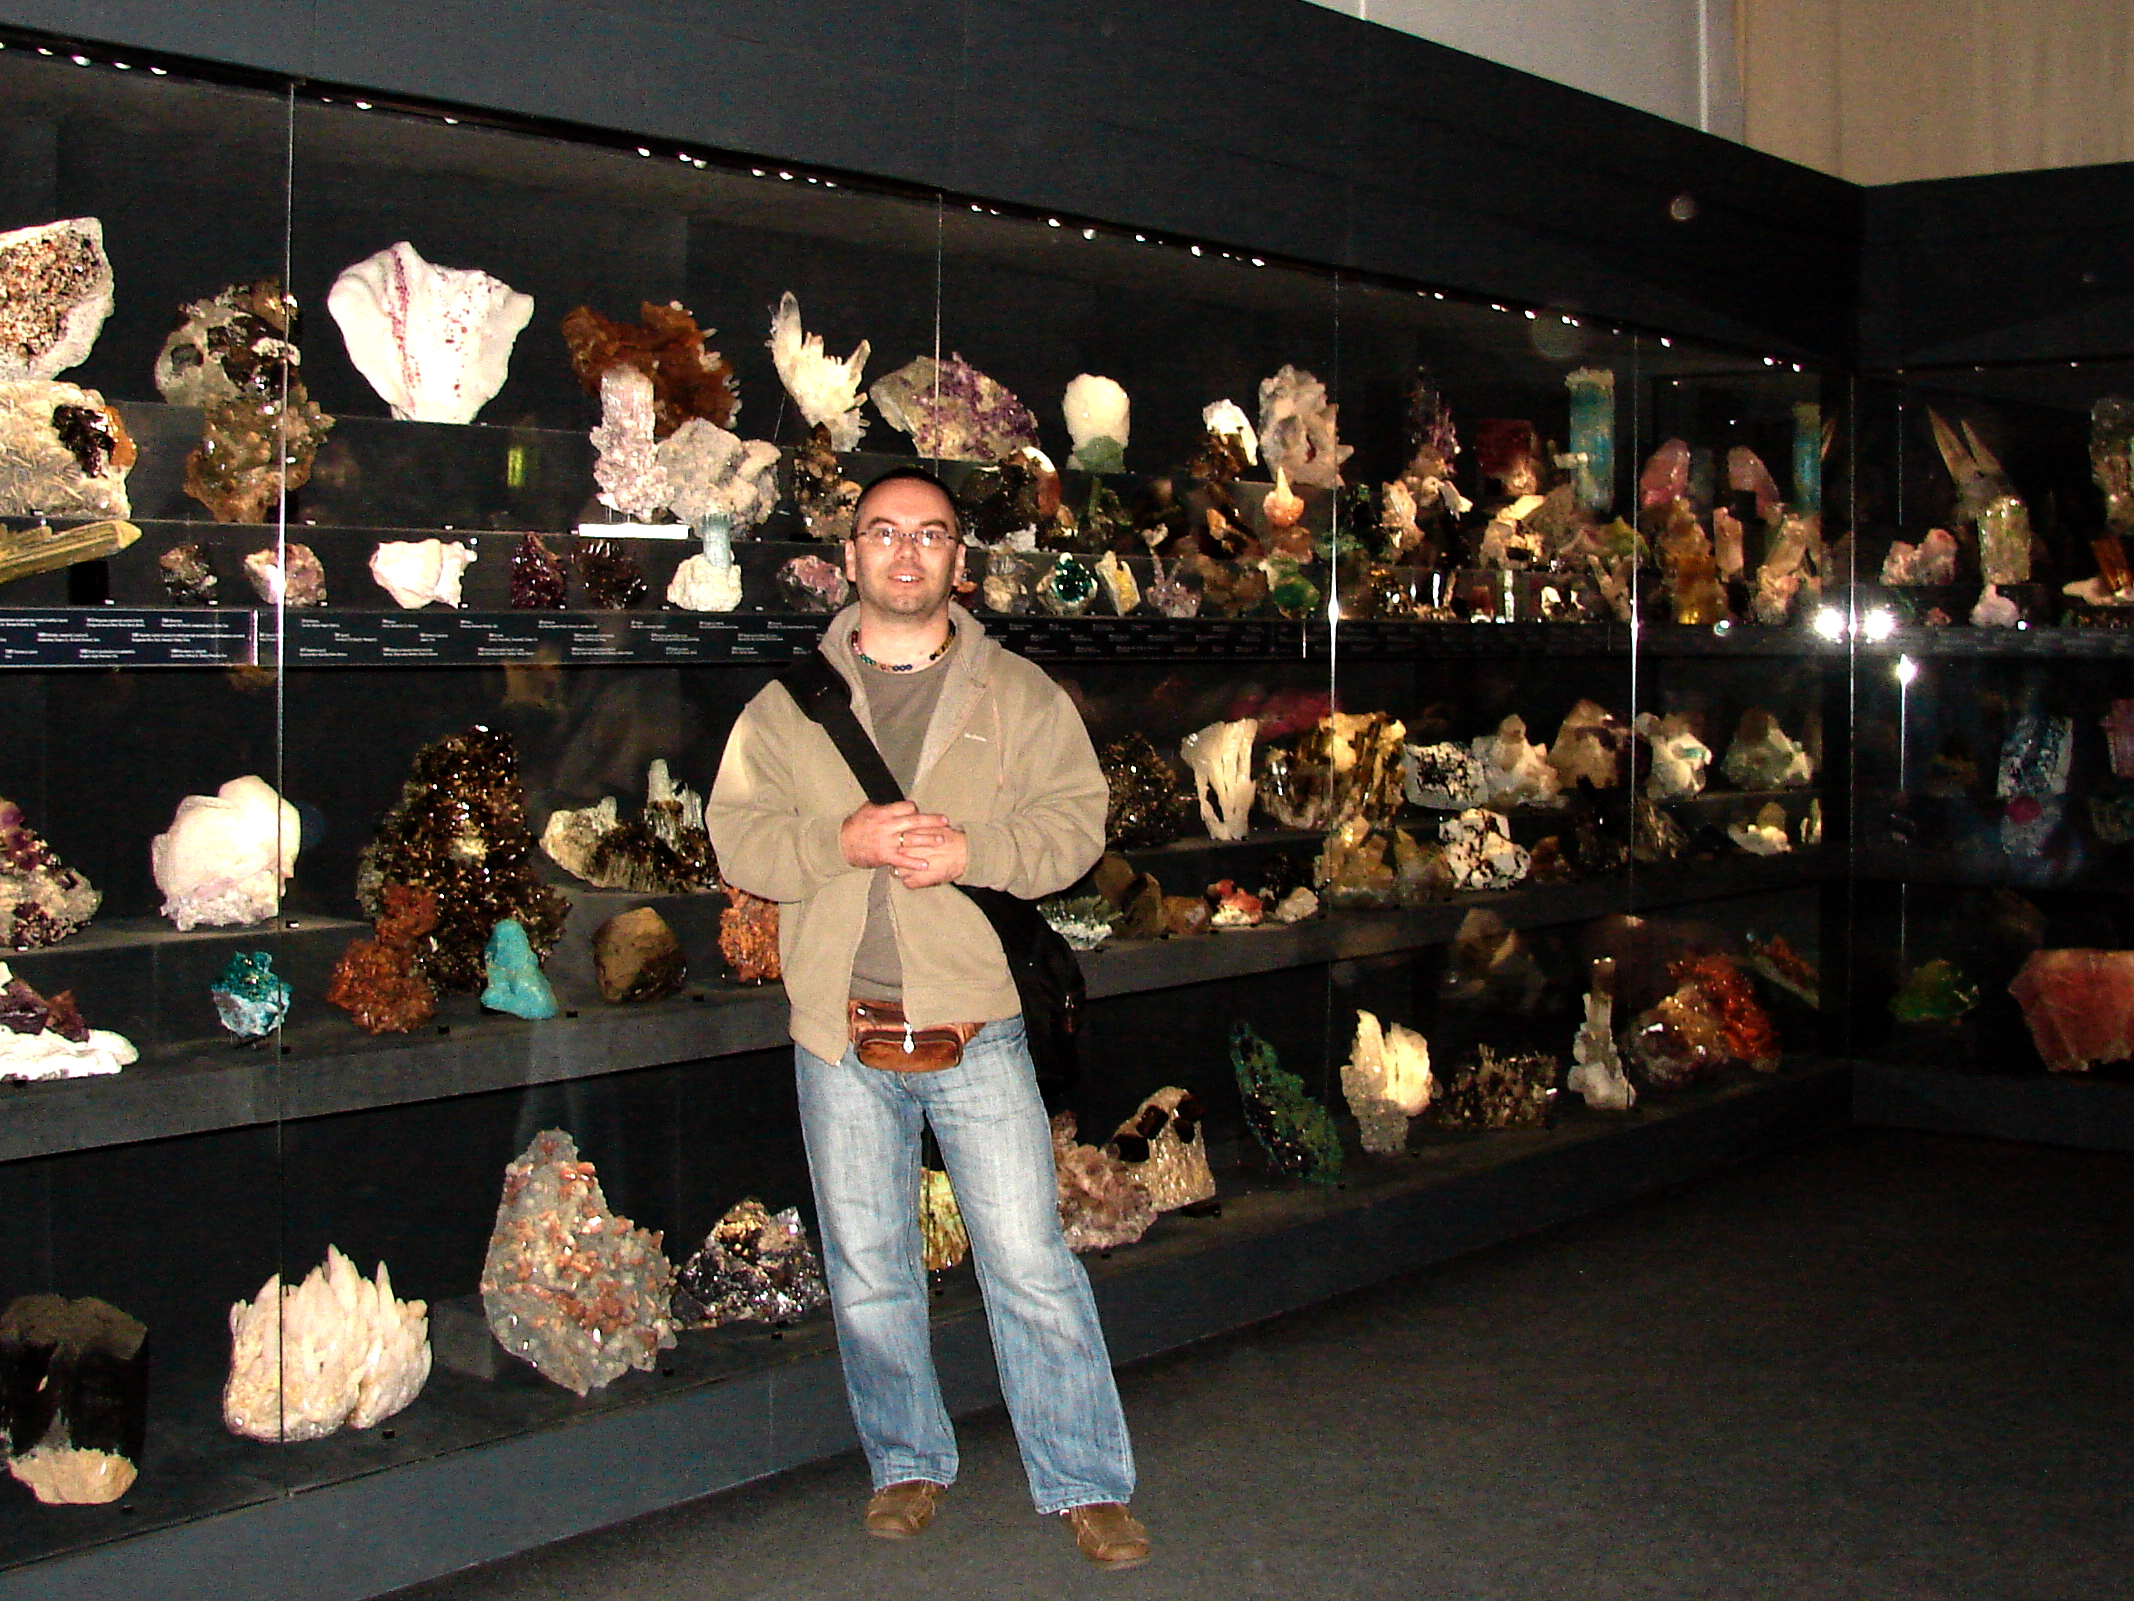 On the amazing Giazotto gem and mineral exhibition - Firenze 2012.april.